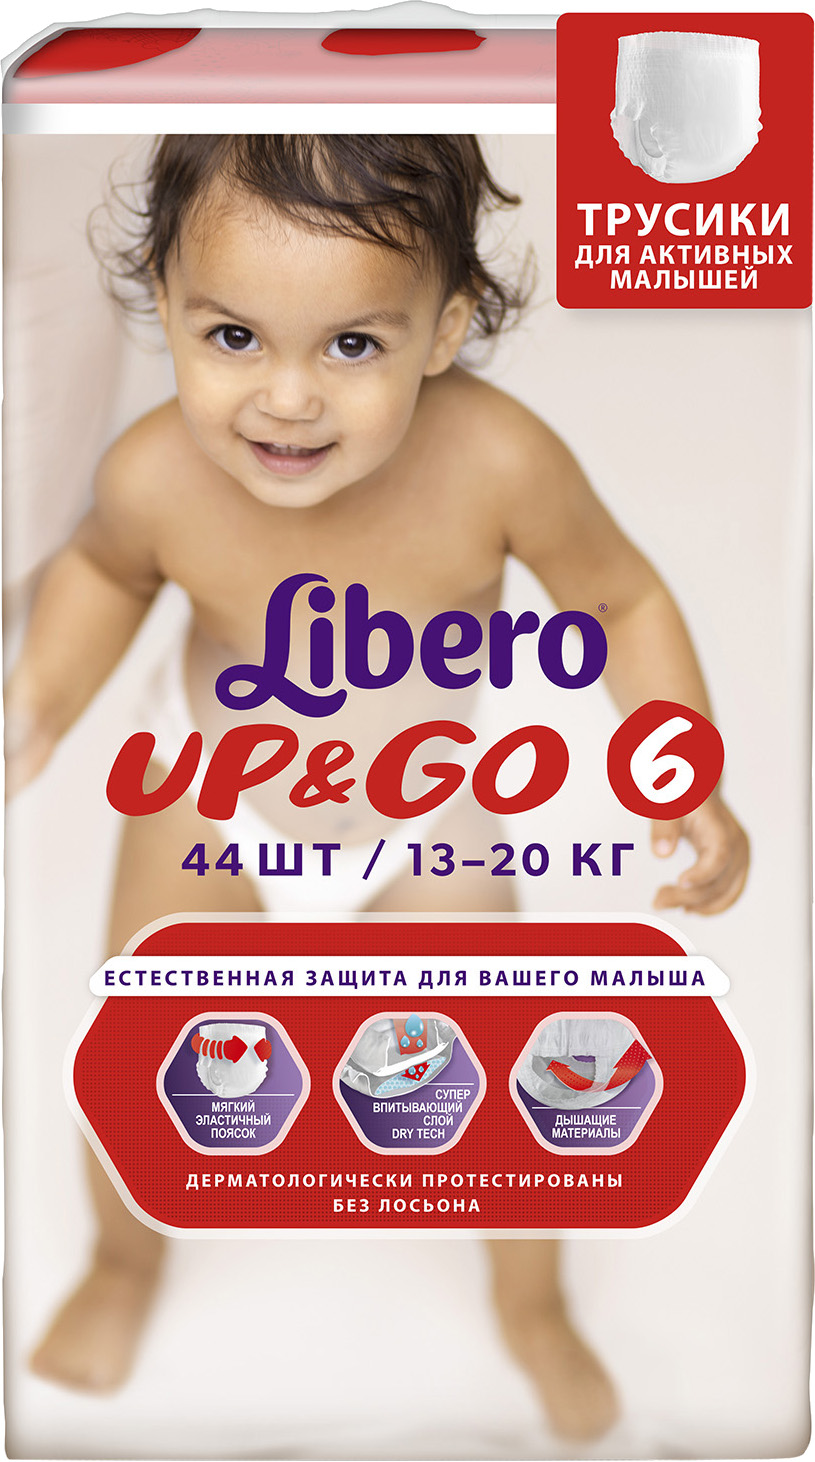 Up & Go 6 (13-20 кг) 44 шт. 01.00.22.5515